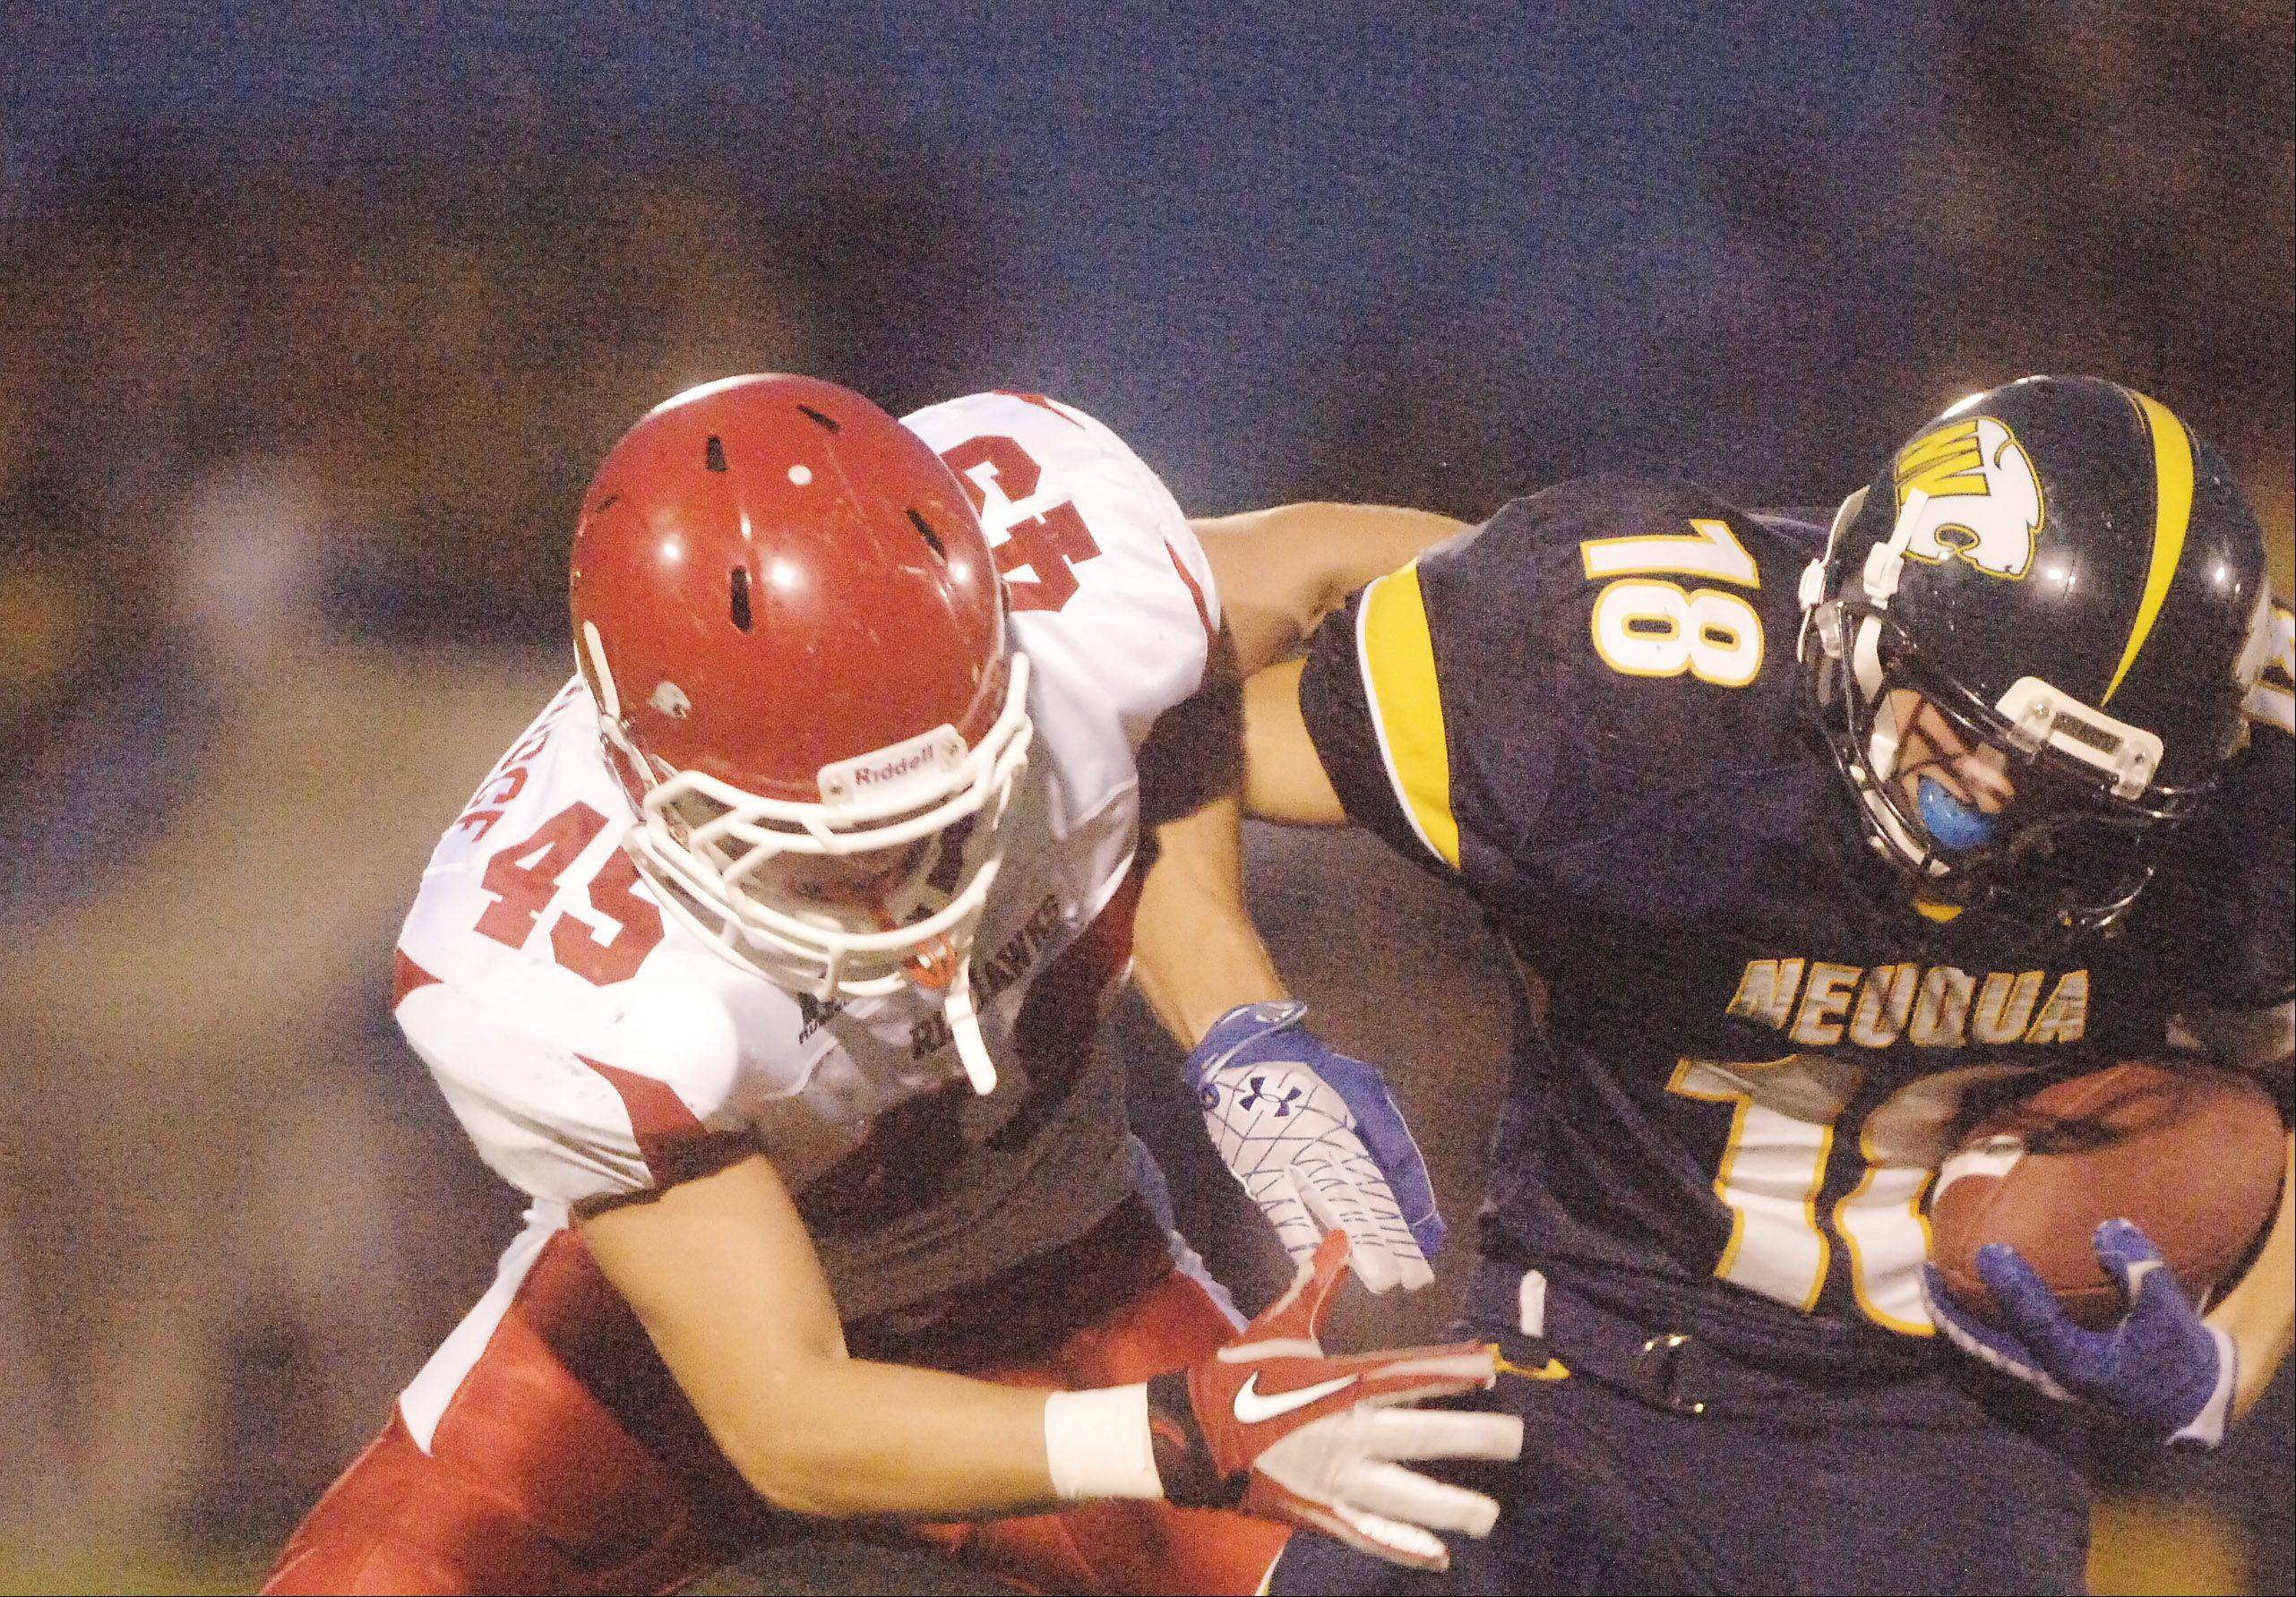 Jack Wooldridge of Naperville Central pulls down Ryan Kuhl of Neuqua Valley during Friday's nonconference game hosted by the Wildcats, who prevailed 41-28.